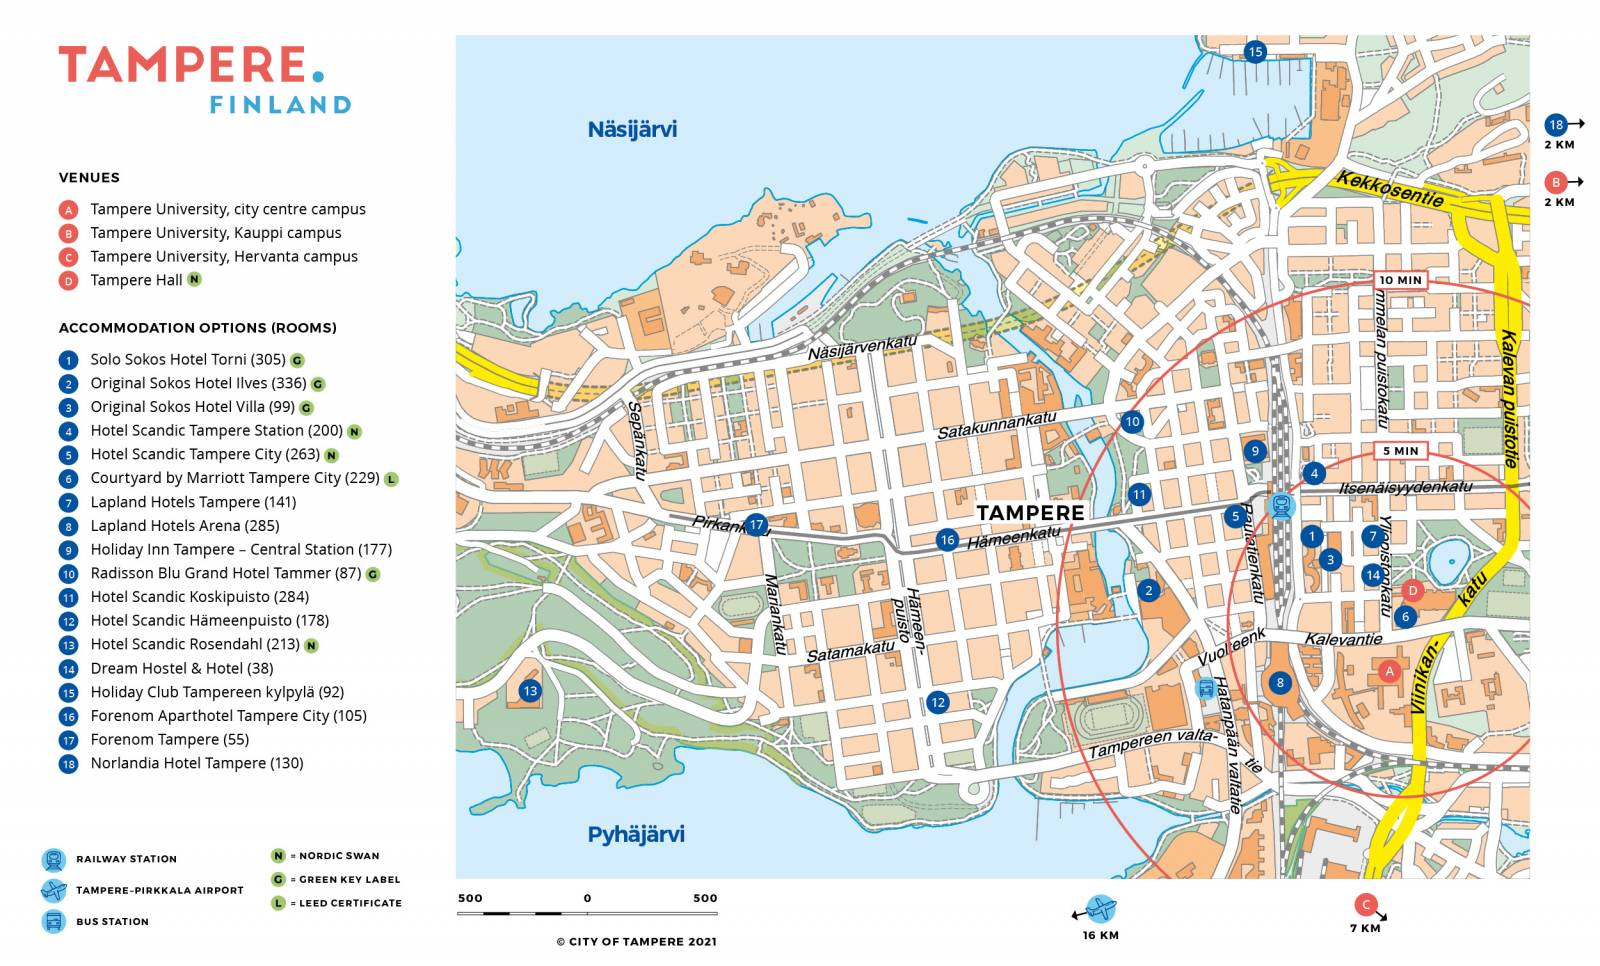 Tampere hotel map